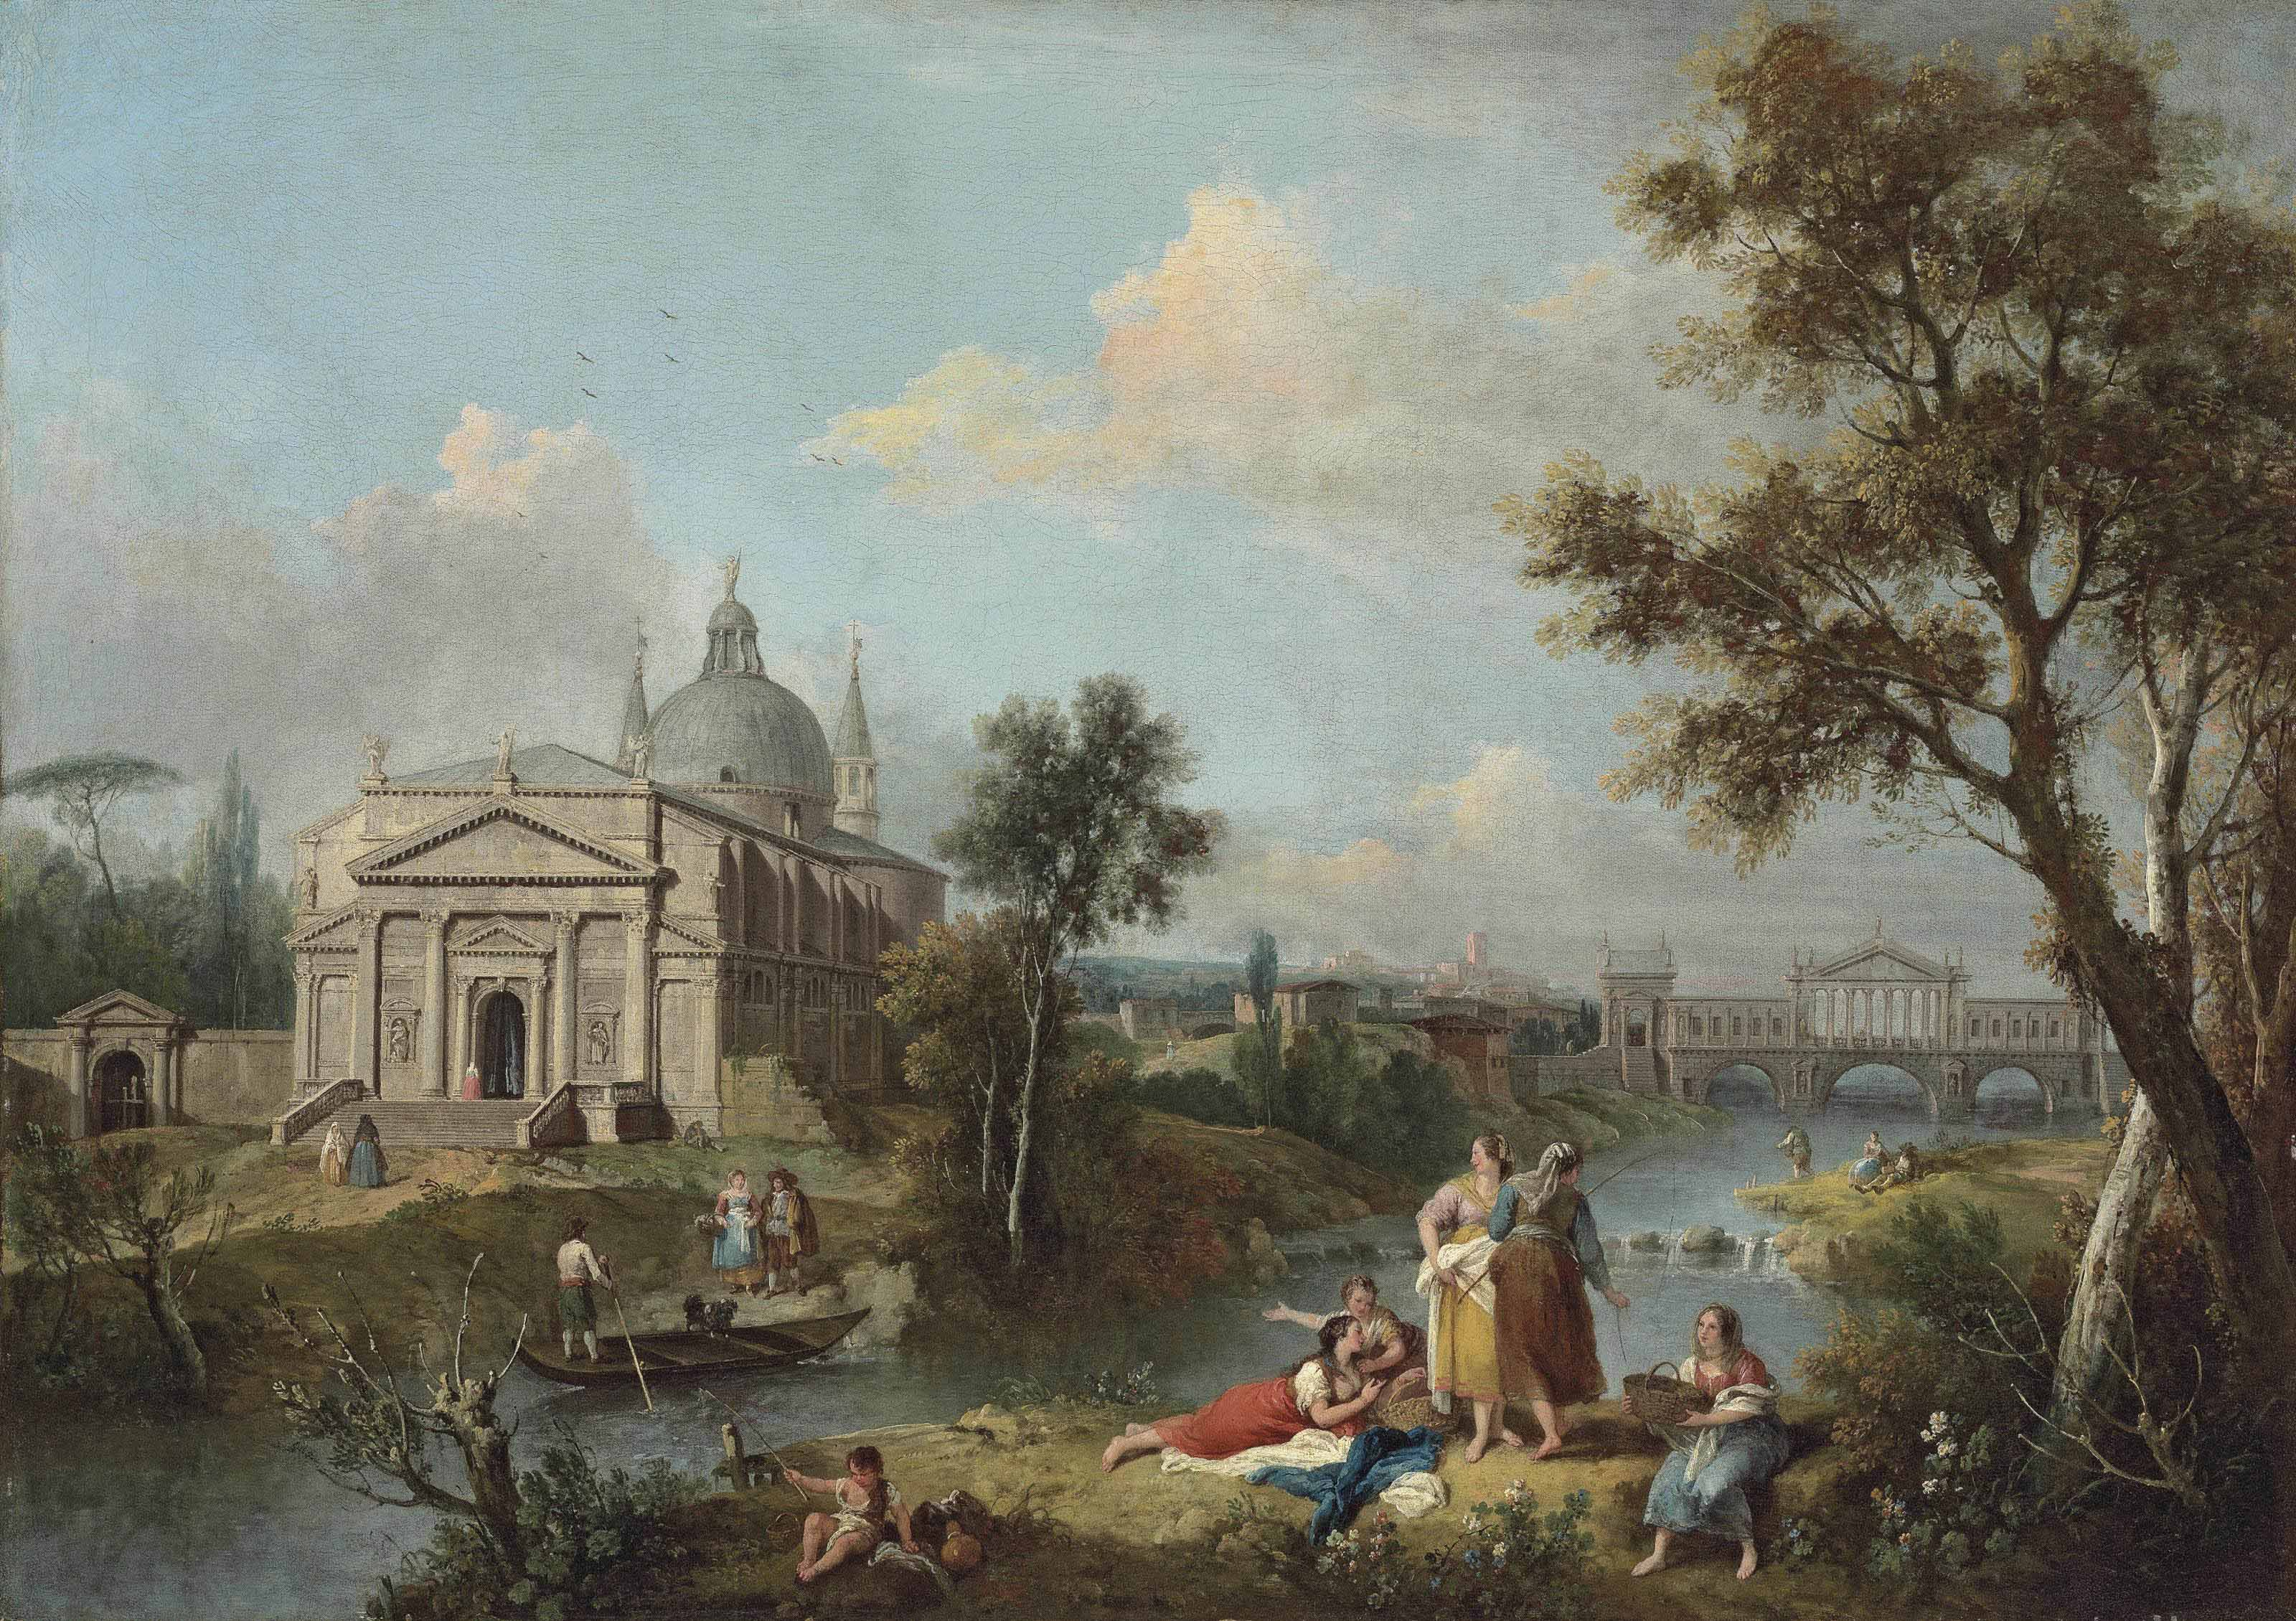 An Italianate river landscape with women fishing and resting on the bank, with a capriccio view of the Redentore and the Rialto Bridge as designed by Andrea Palladio beyond